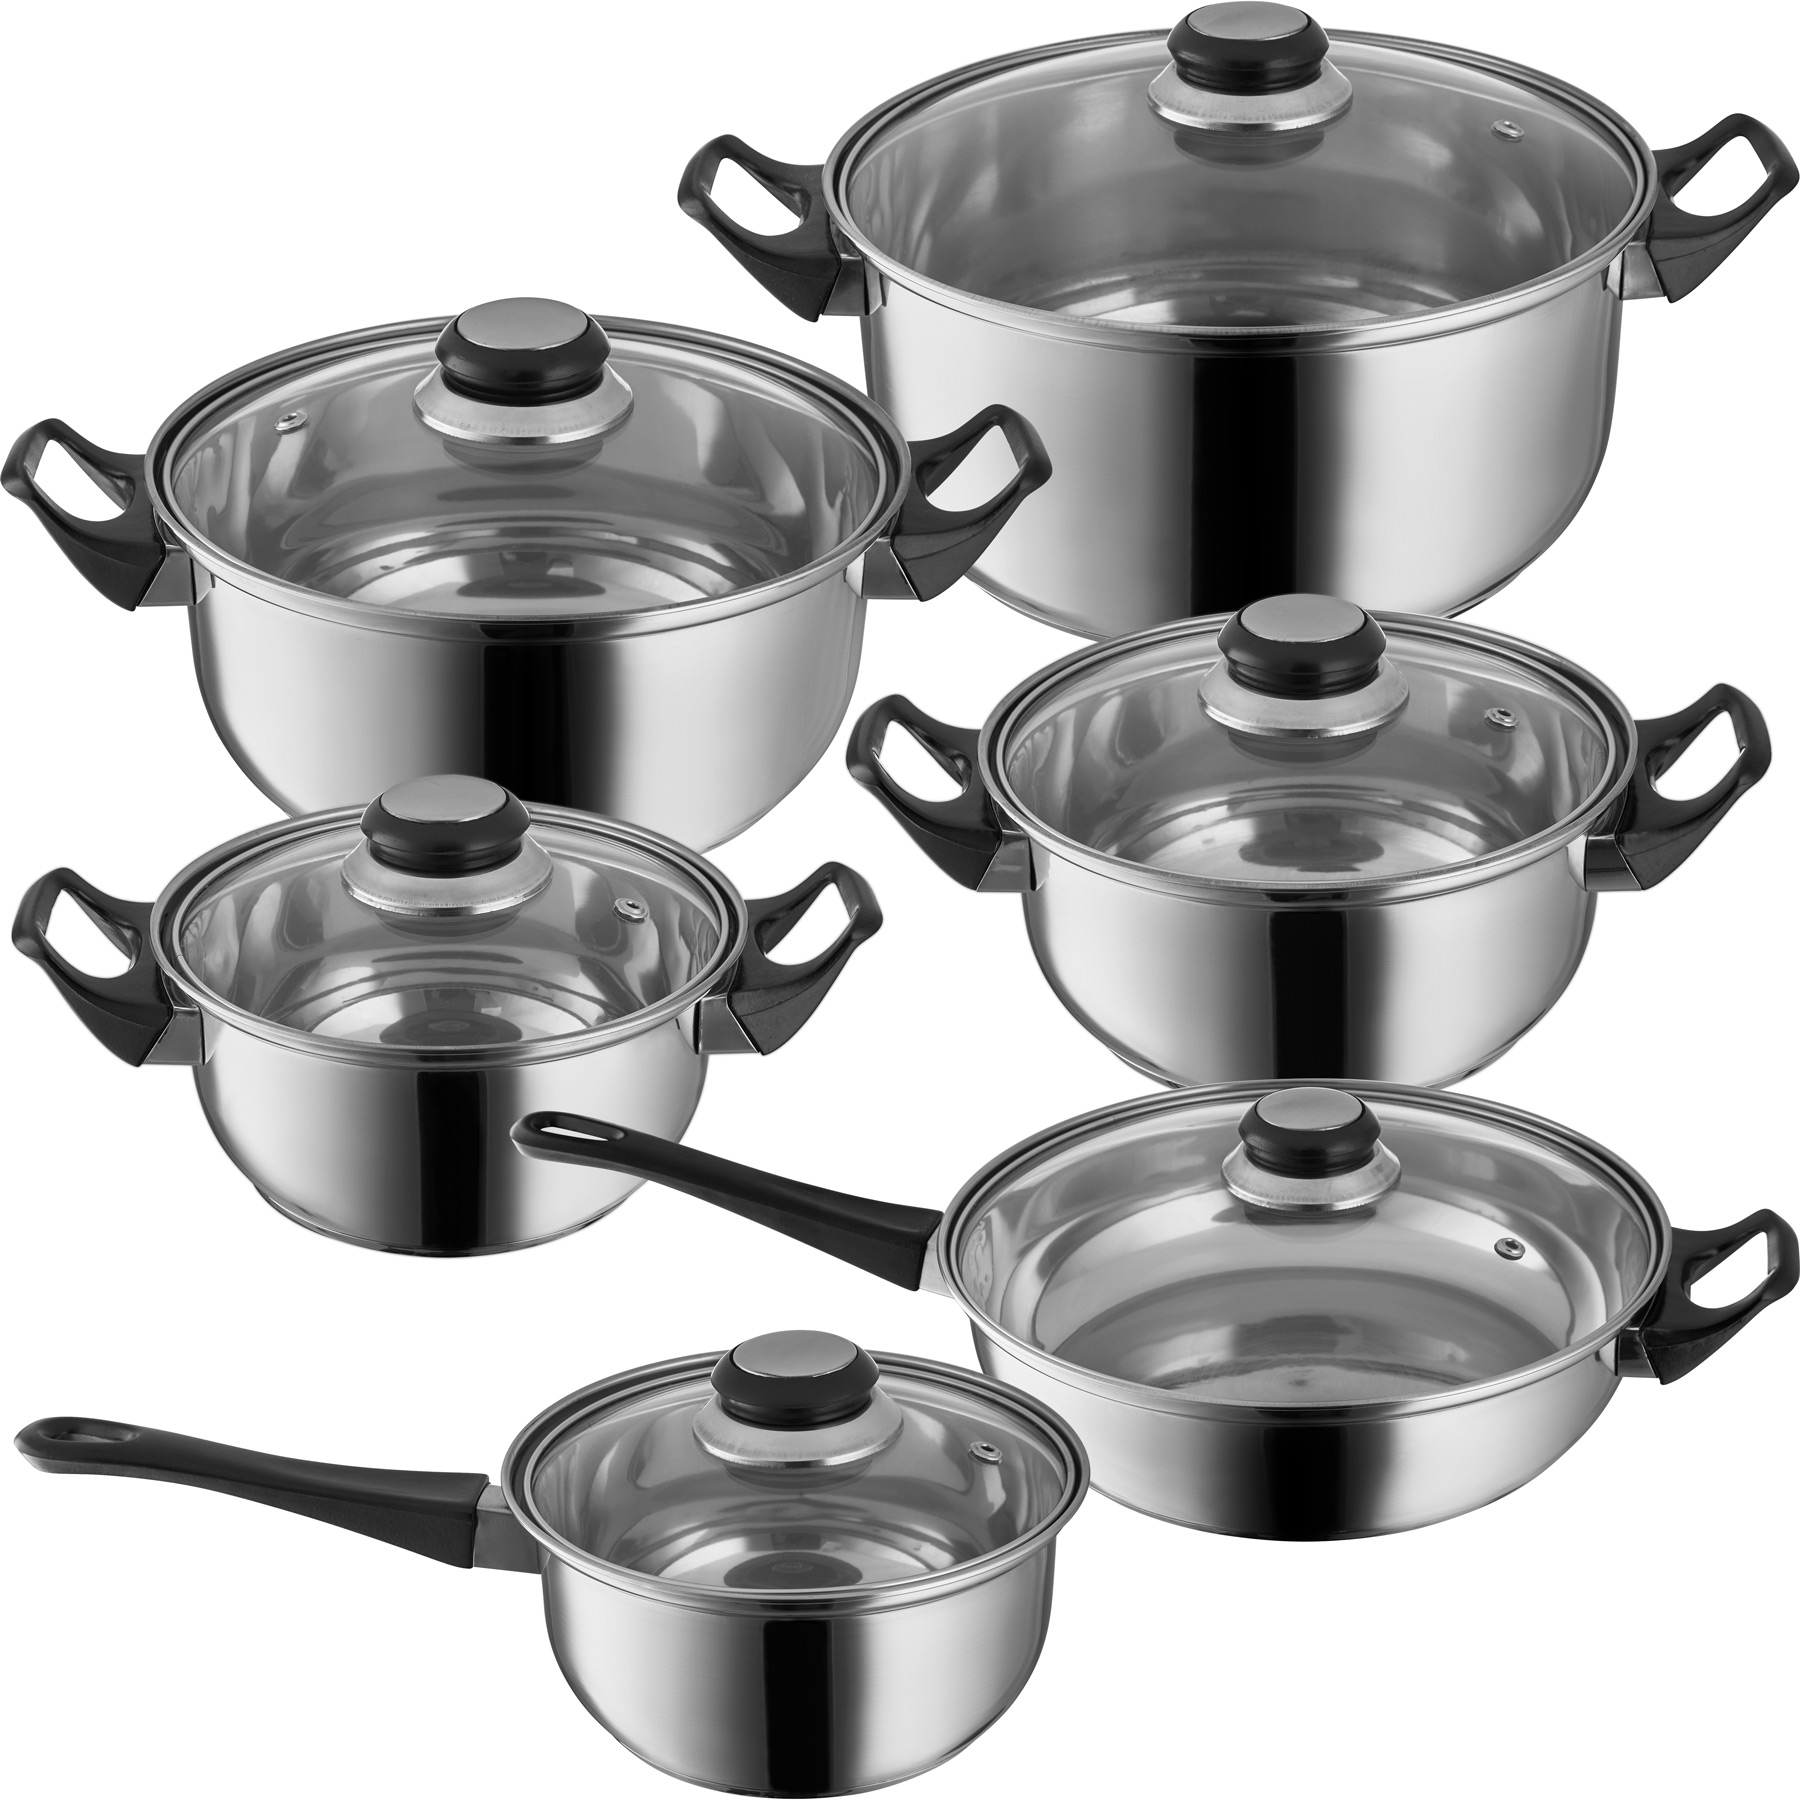 12 Pc Stainless Steel Cooking Pots Lids Frying Pan Cooking